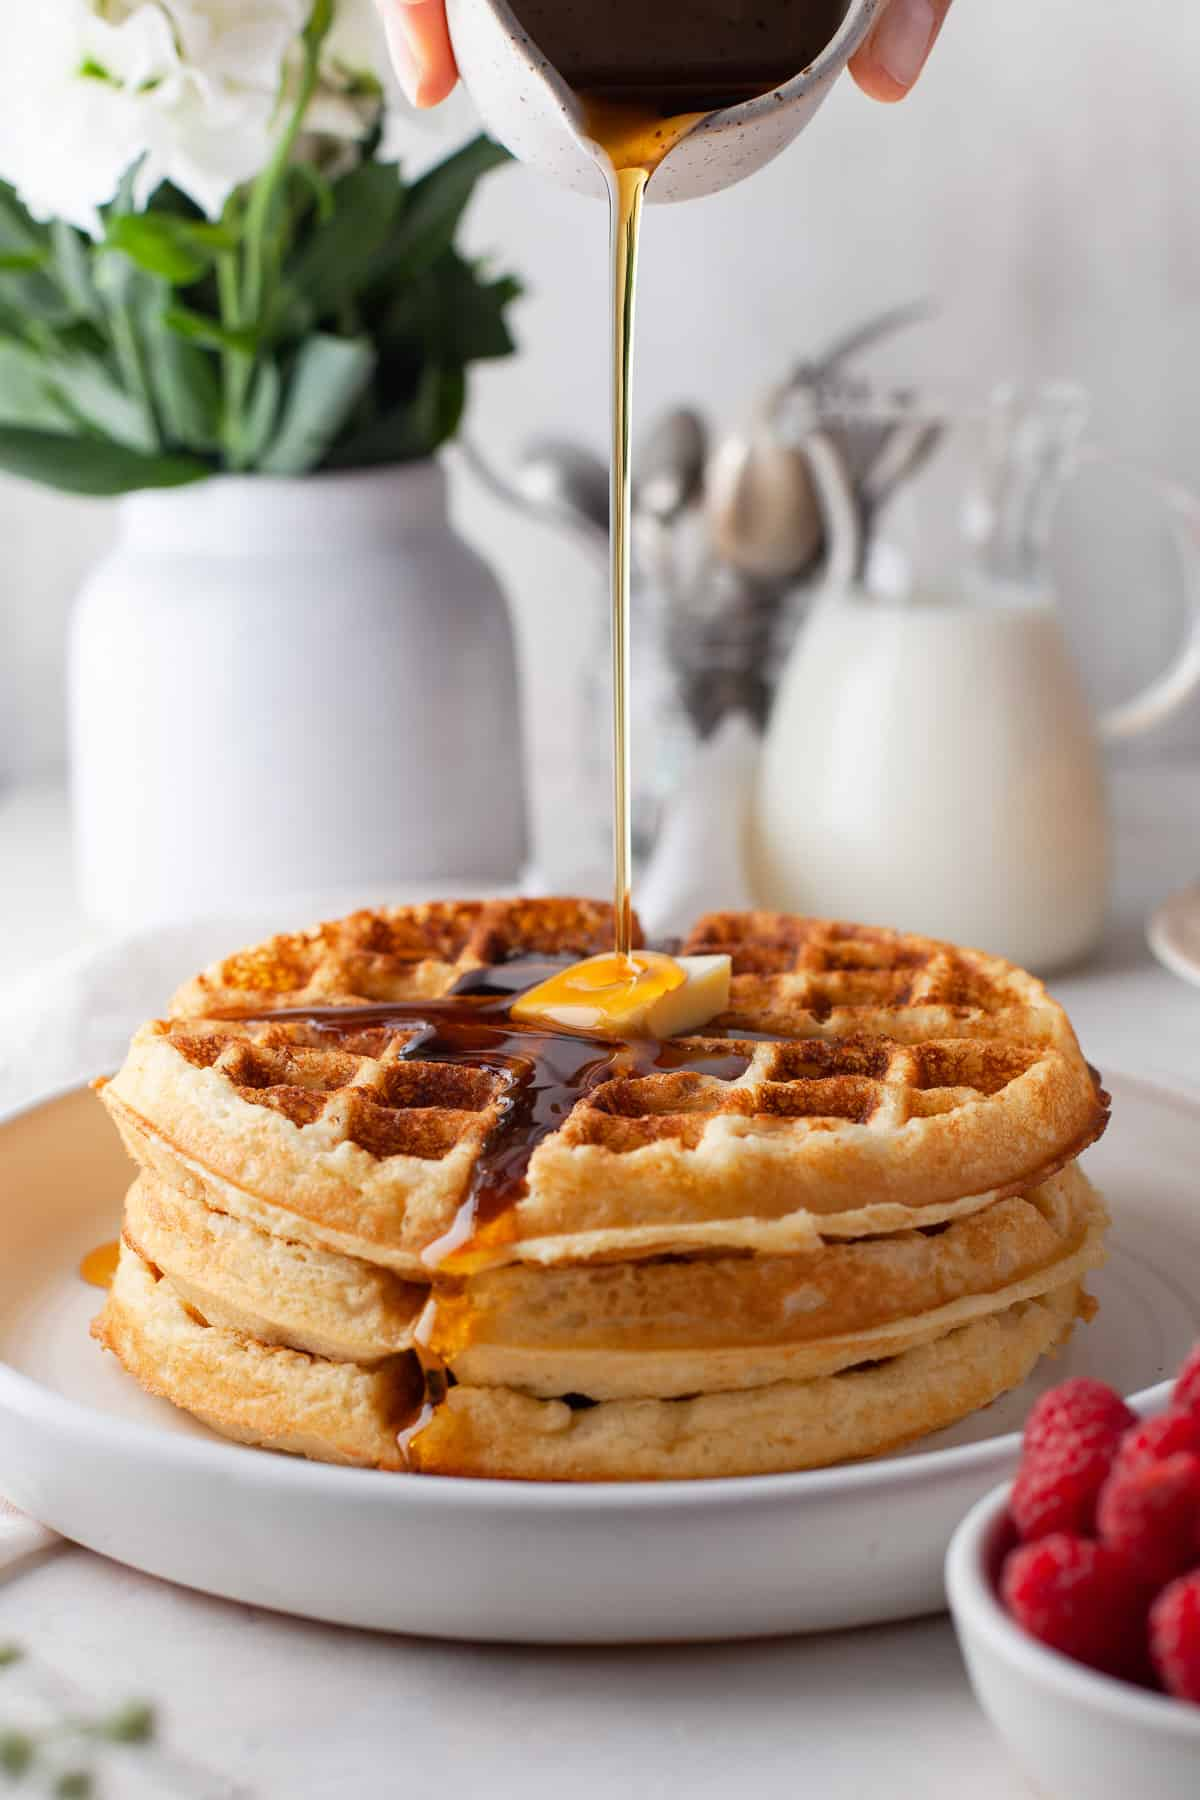 a stack of three waffles on a plate with syrup being drizzled over a pat of butter on top.